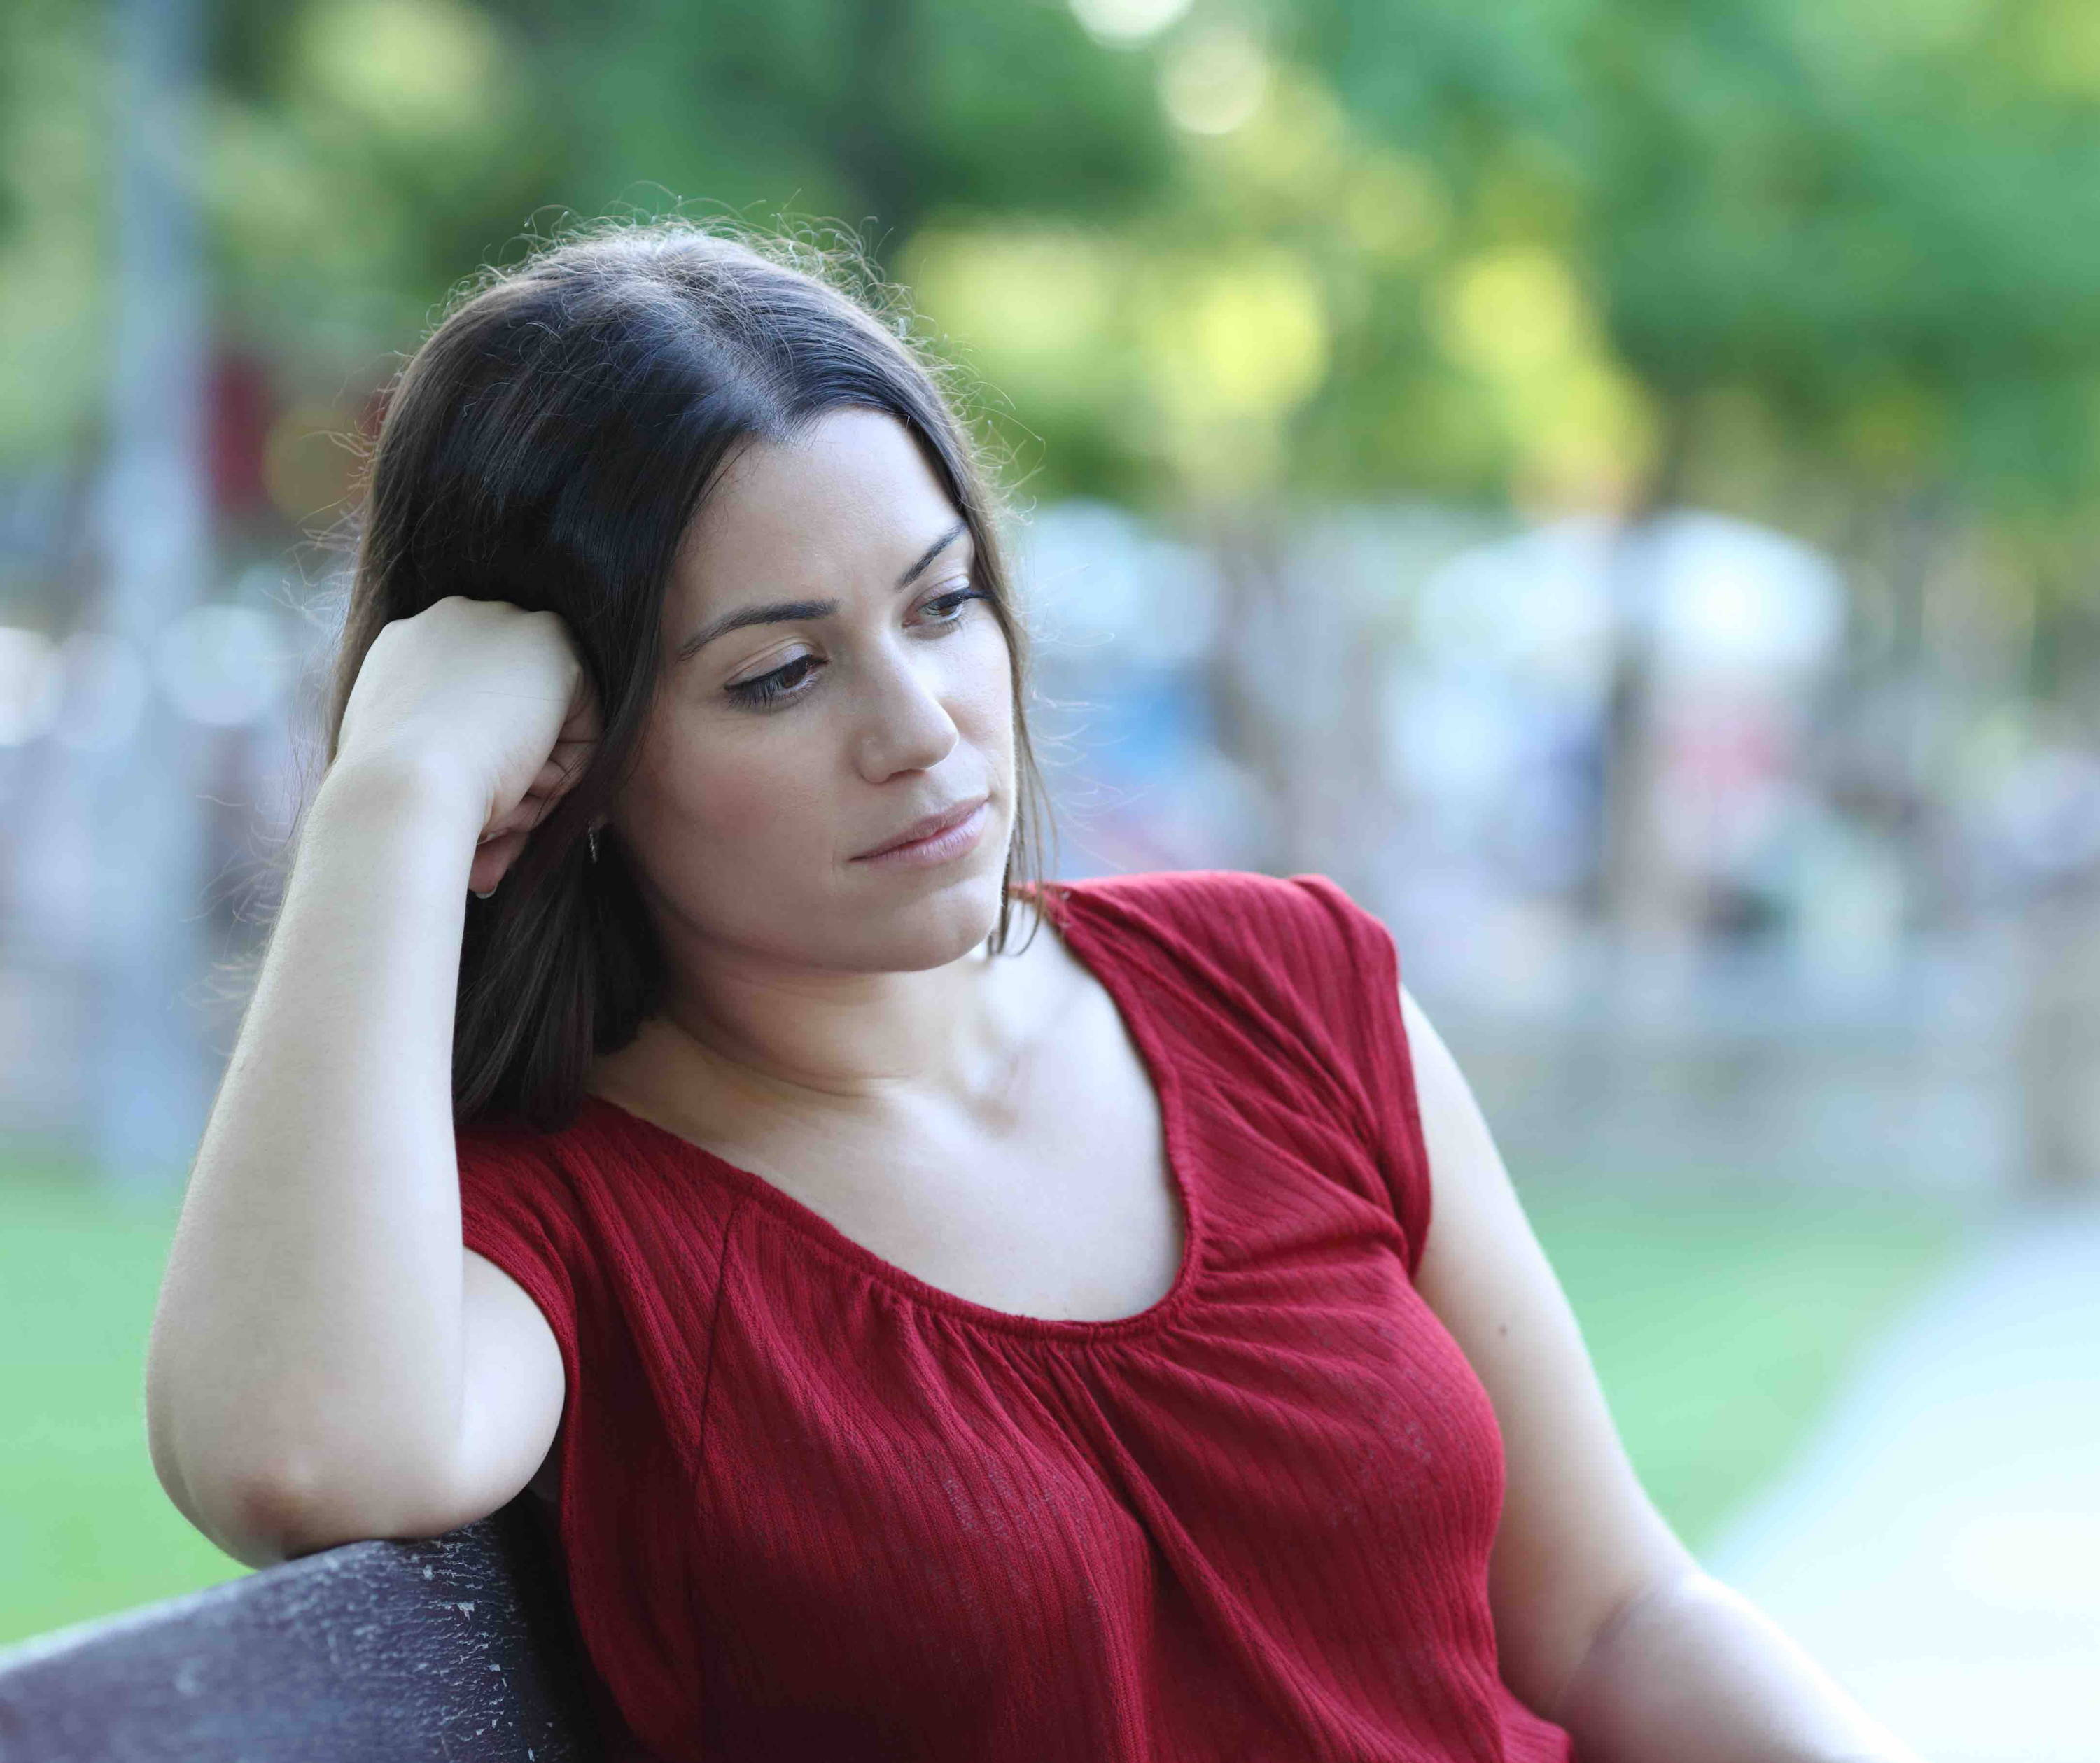 Woman on bench looking pensive